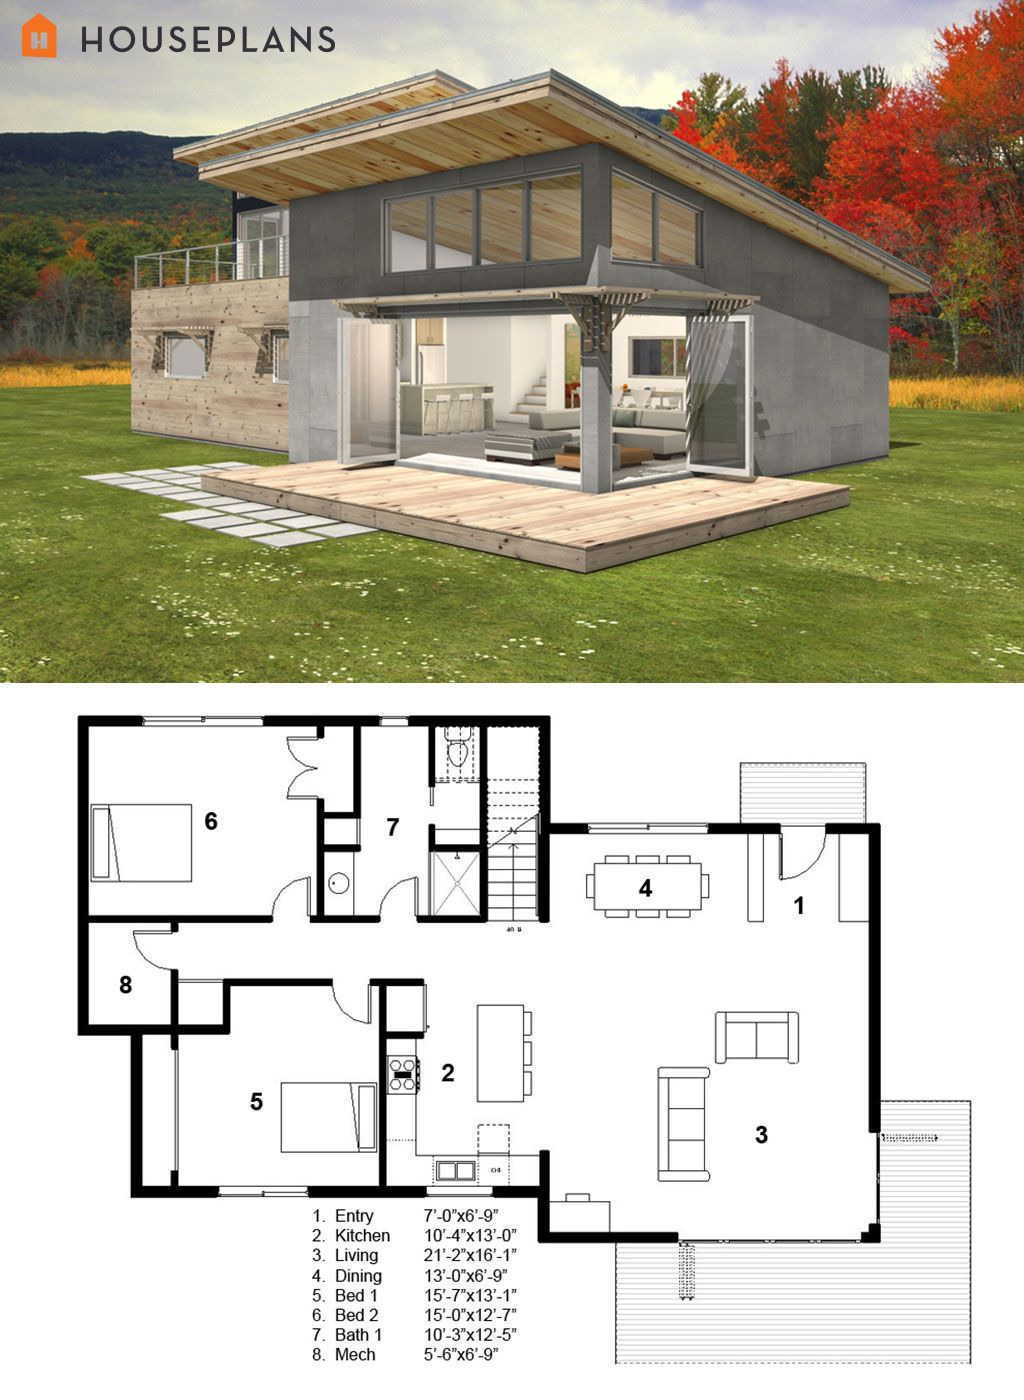 Small House Designs Images Inspirational Modern Style House Plan 3 Beds 2 Baths 2115 Sq Ft Plan